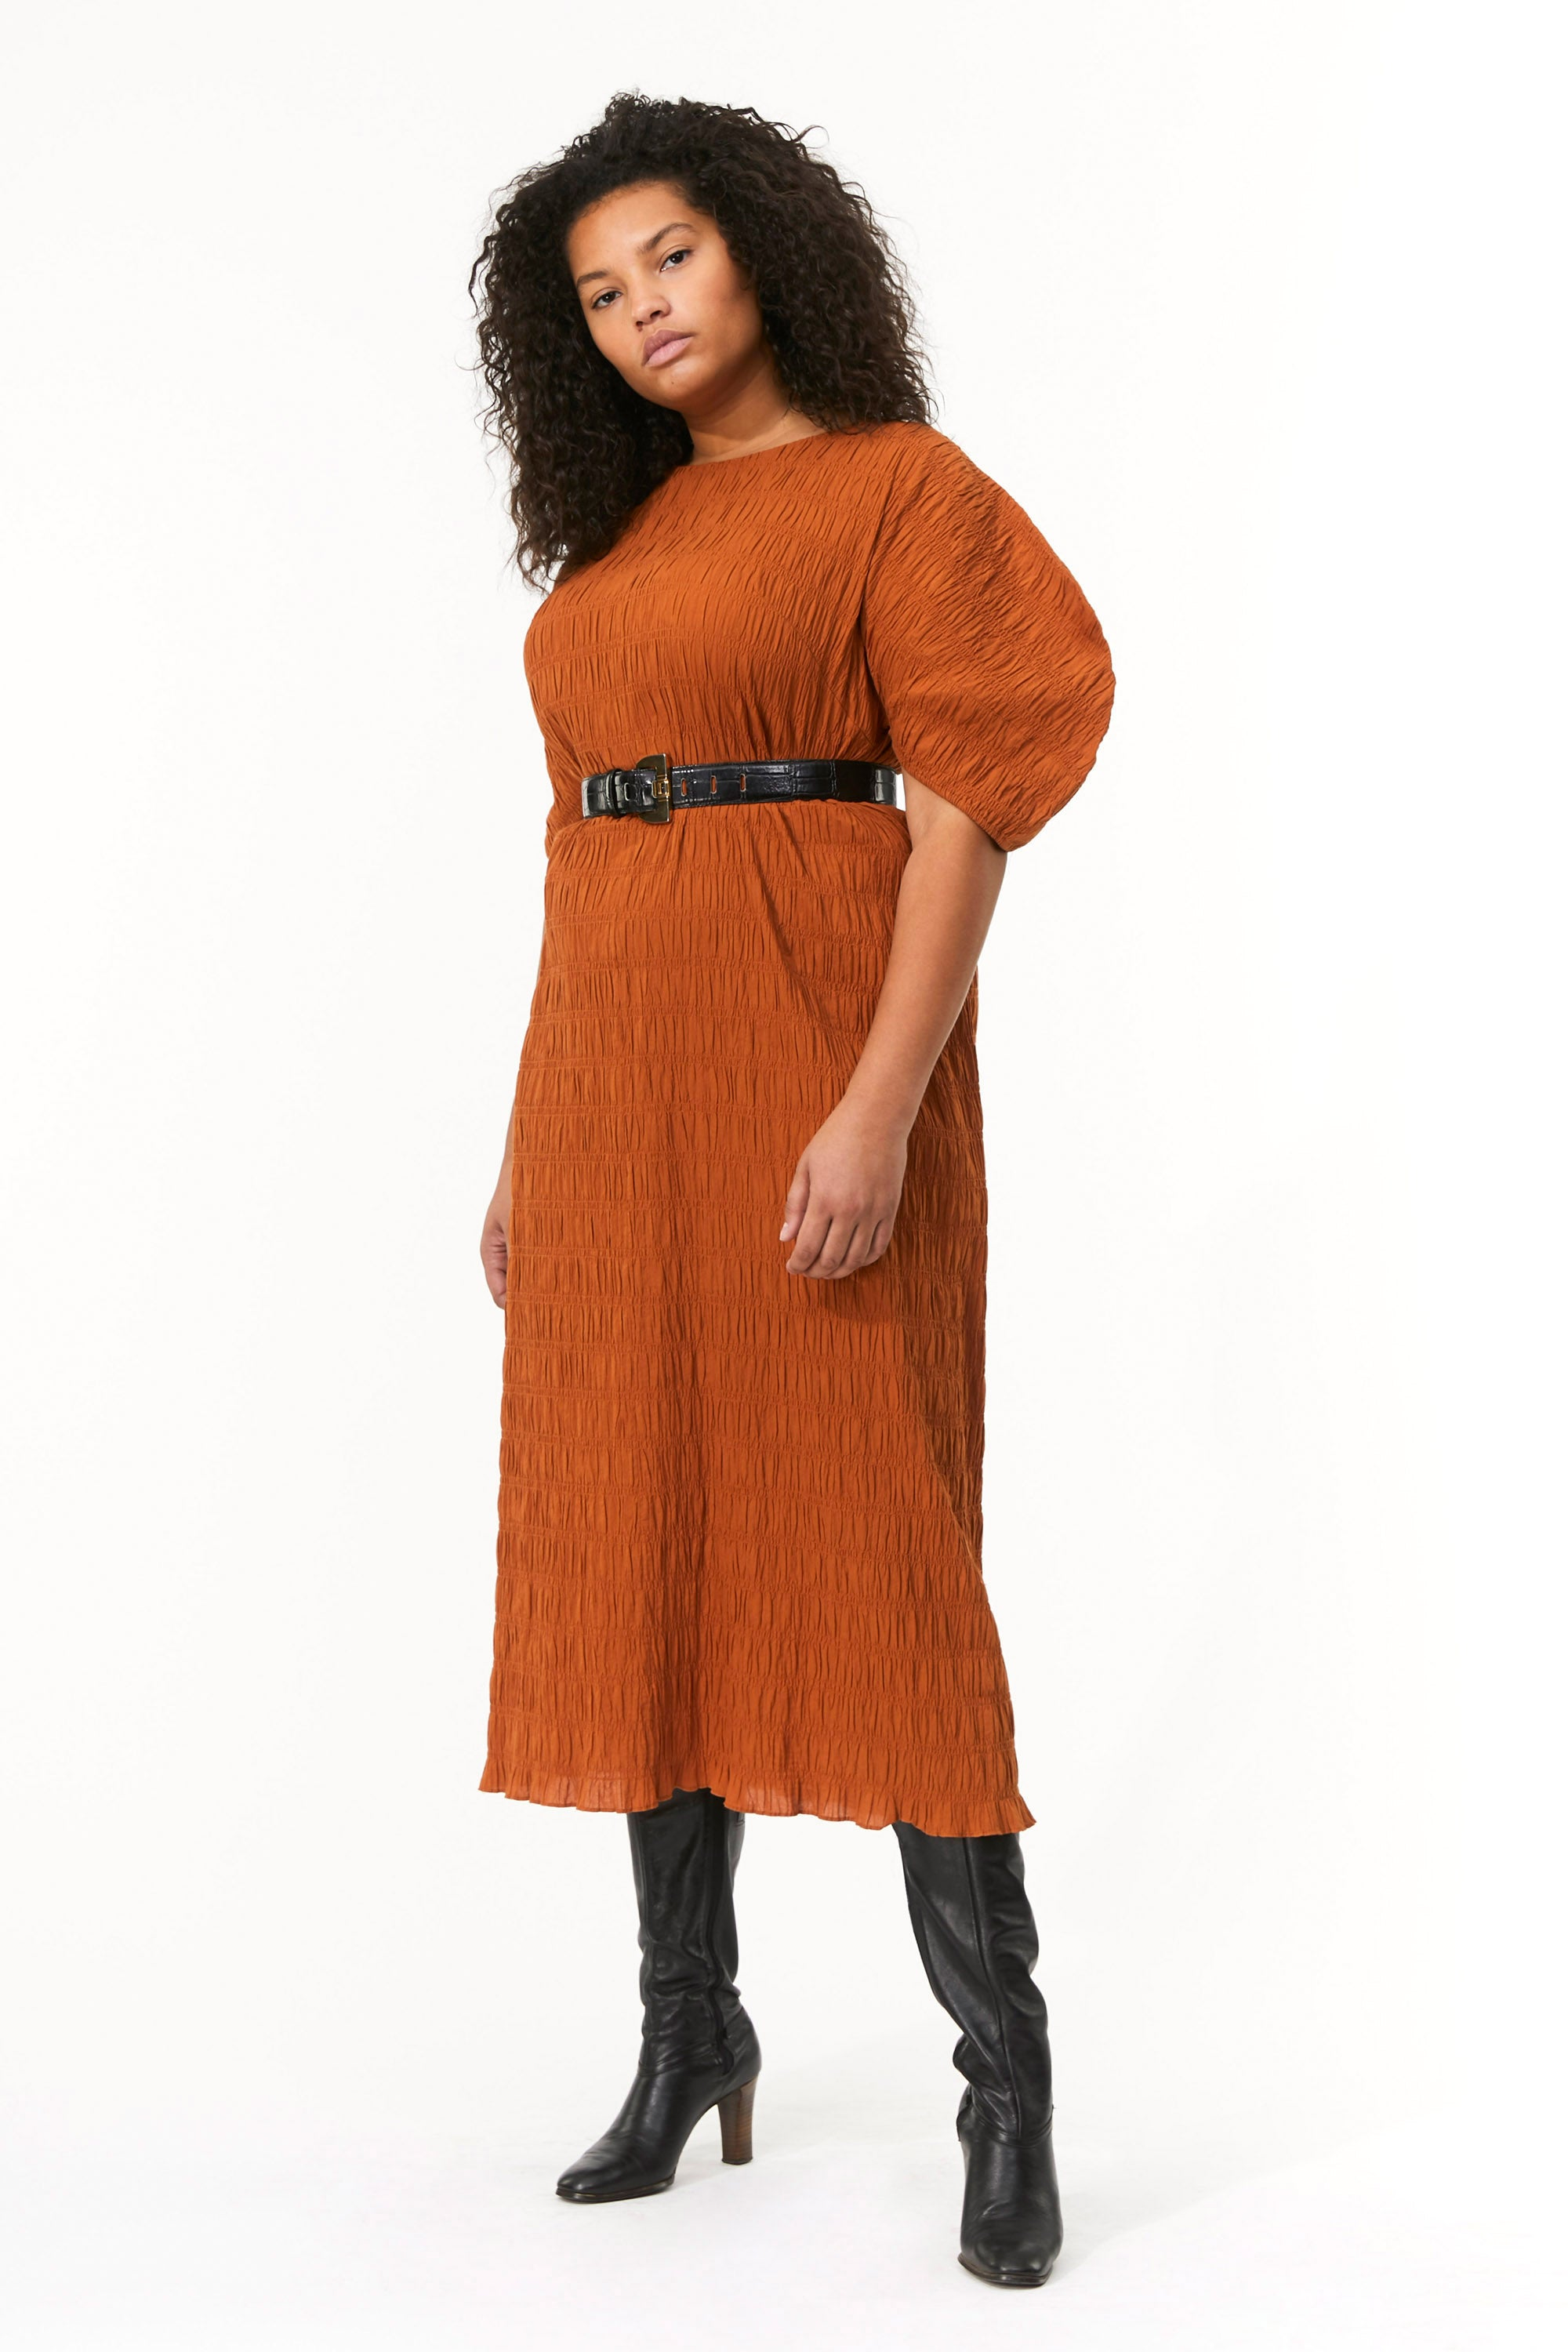 Mara Hoffman Extended Brown Aranza dress in organic cotton (front)